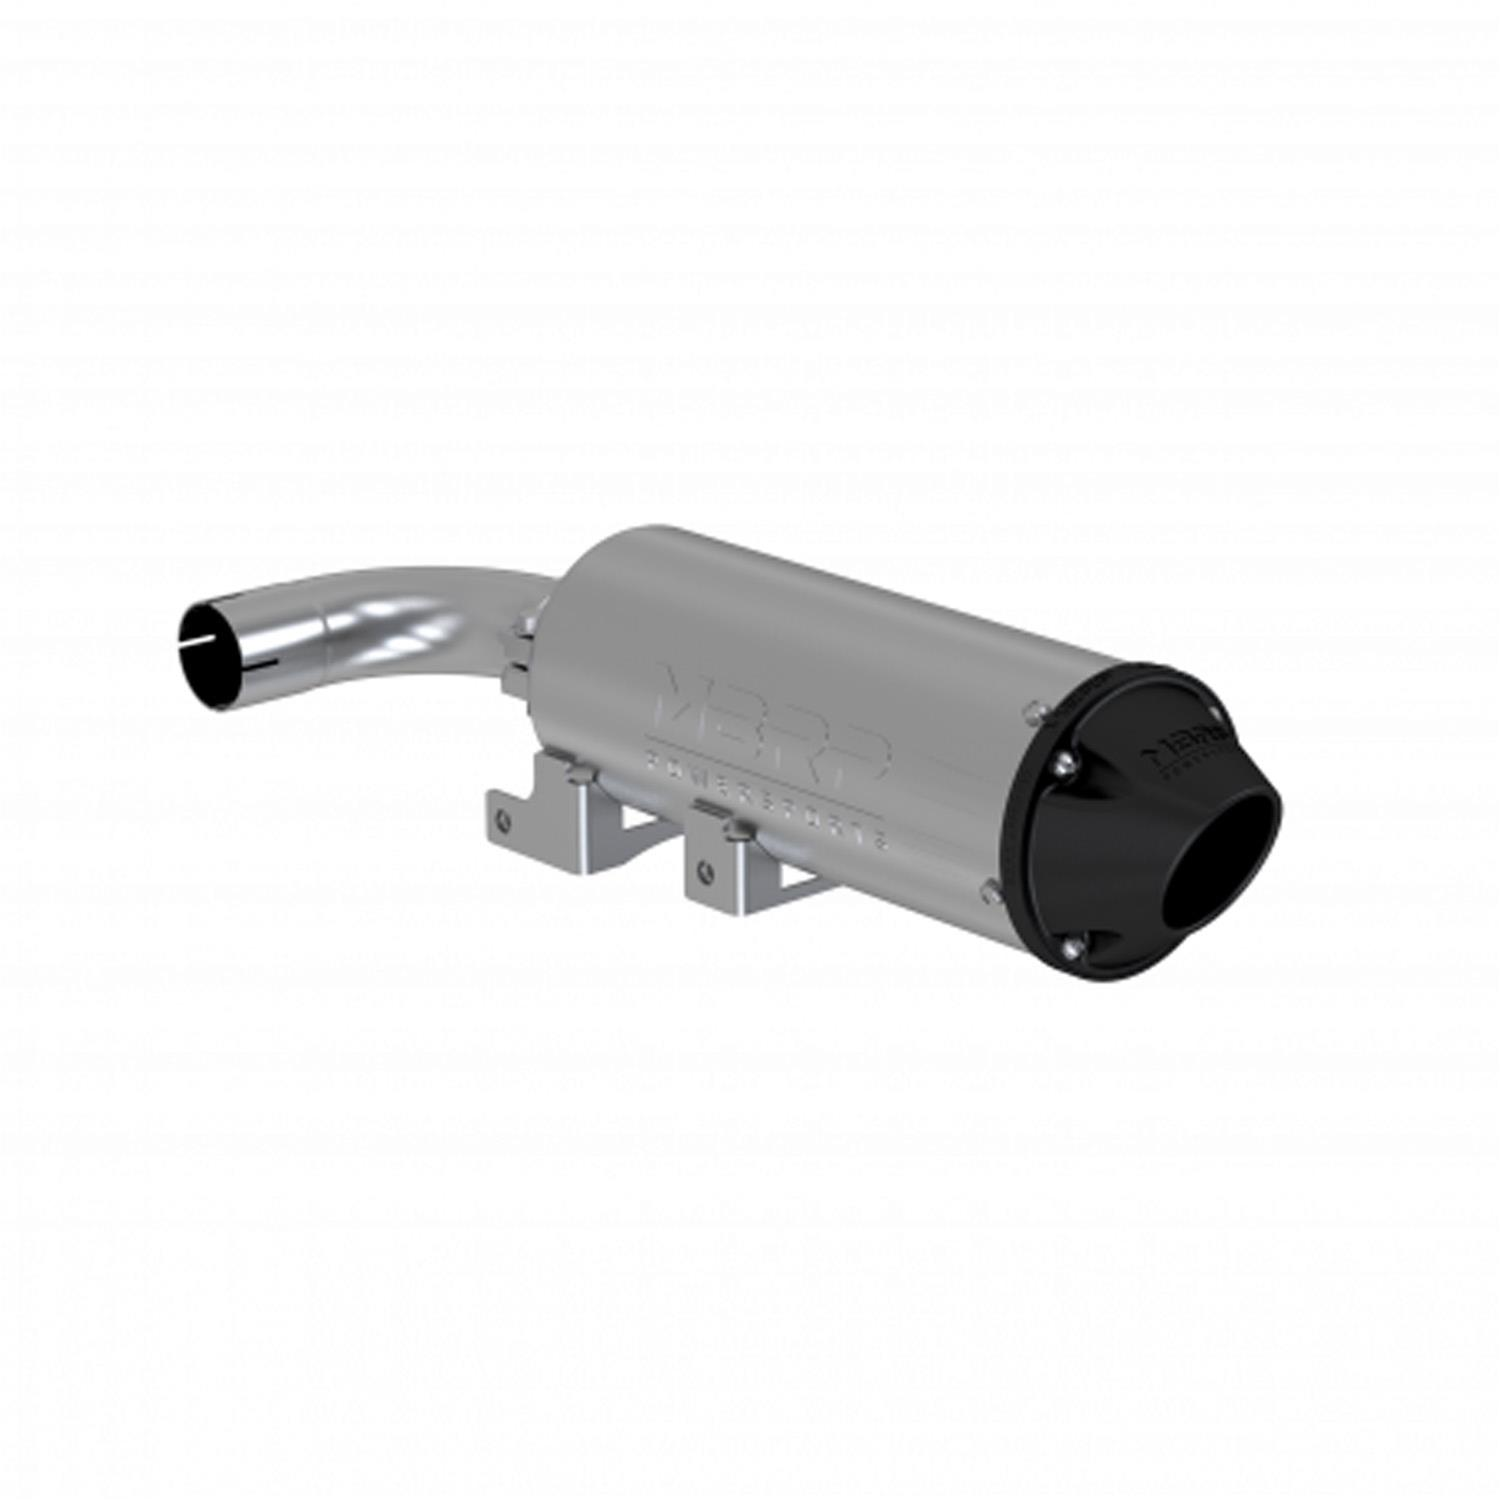 mbrp performance exhaust at 9406pt mbrp performance 5 in slip on mufflers summit racing